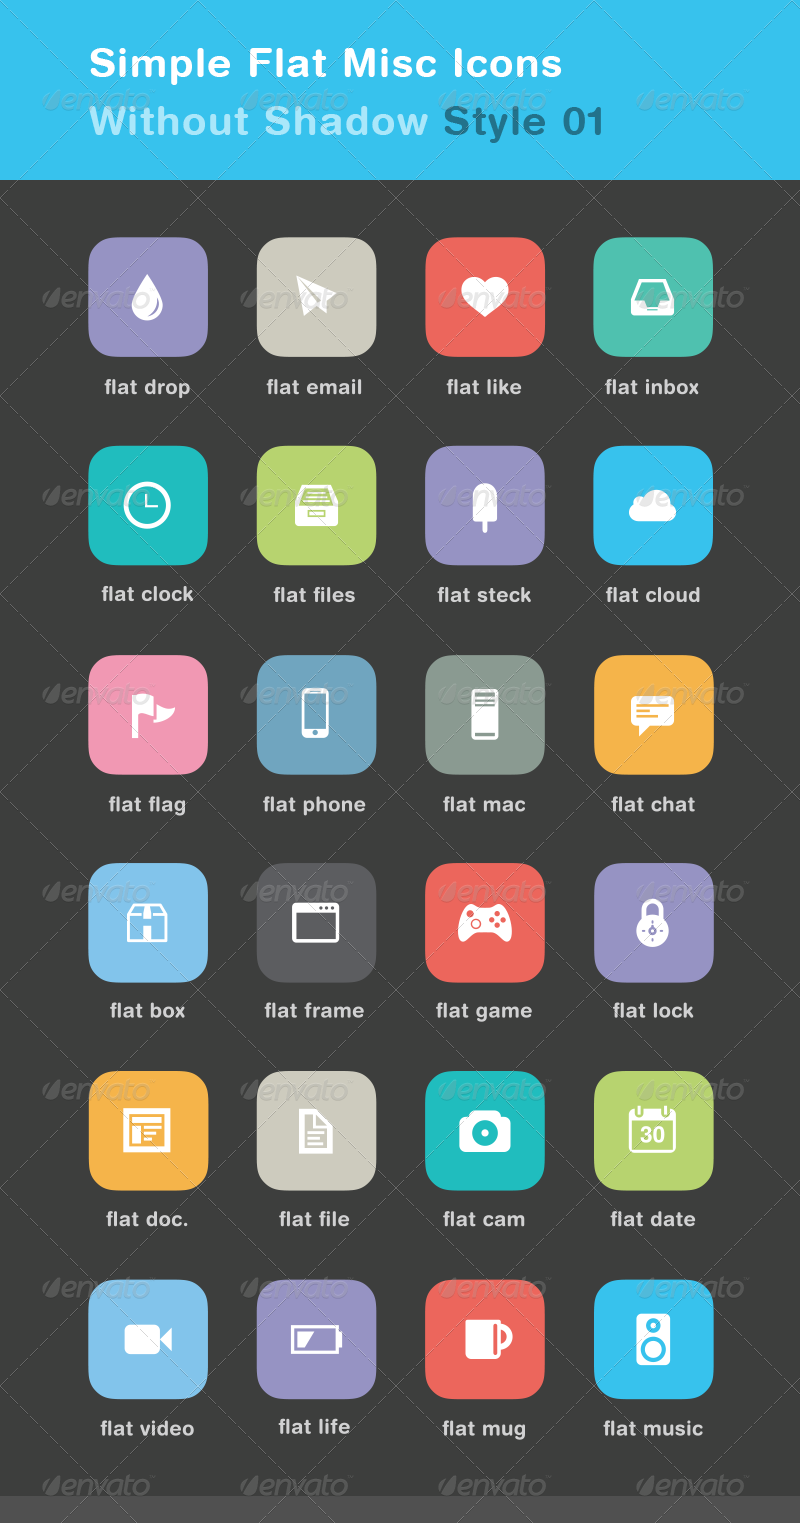 24 Simple Flat   Misc Icons by malyousfi   GraphicRiver further 24 Simple Flat   Misc Icons by malyousfi   GraphicRiver moreover Boxershorts Mit Bademantel In Schwarz Stockfoto 180267937   iStock as well Boxershorts Mit Bademantel In Schwarz Stockfoto 180267937   iStock besides 24 Simple Flat   Misc Icons by malyousfi   GraphicRiver as well  on 2480x4246